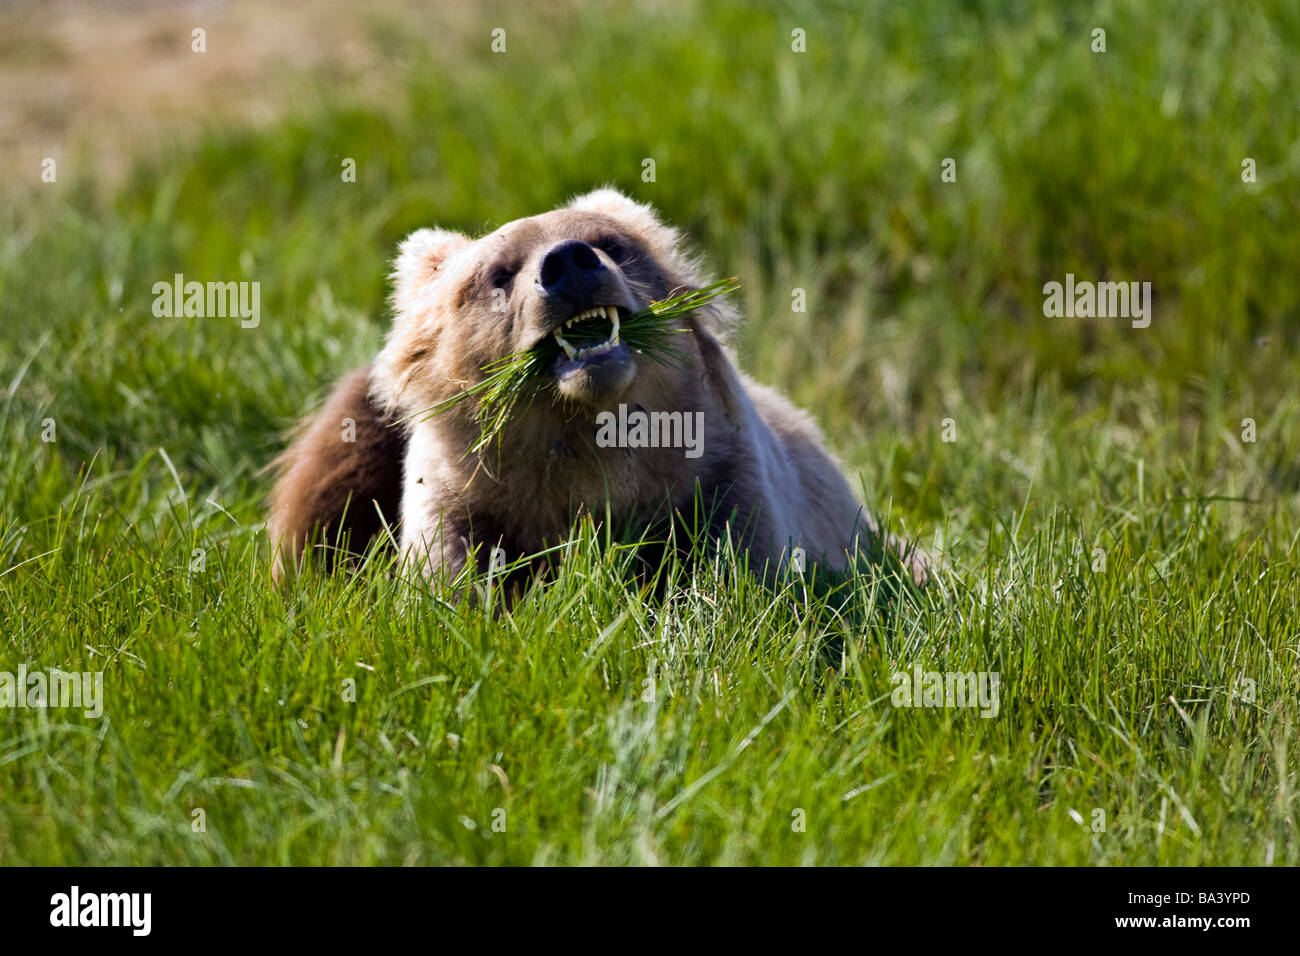 Brown bear eating sedge grass in the Kaguyak area of Katmai National Park, Alaska - Stock Image